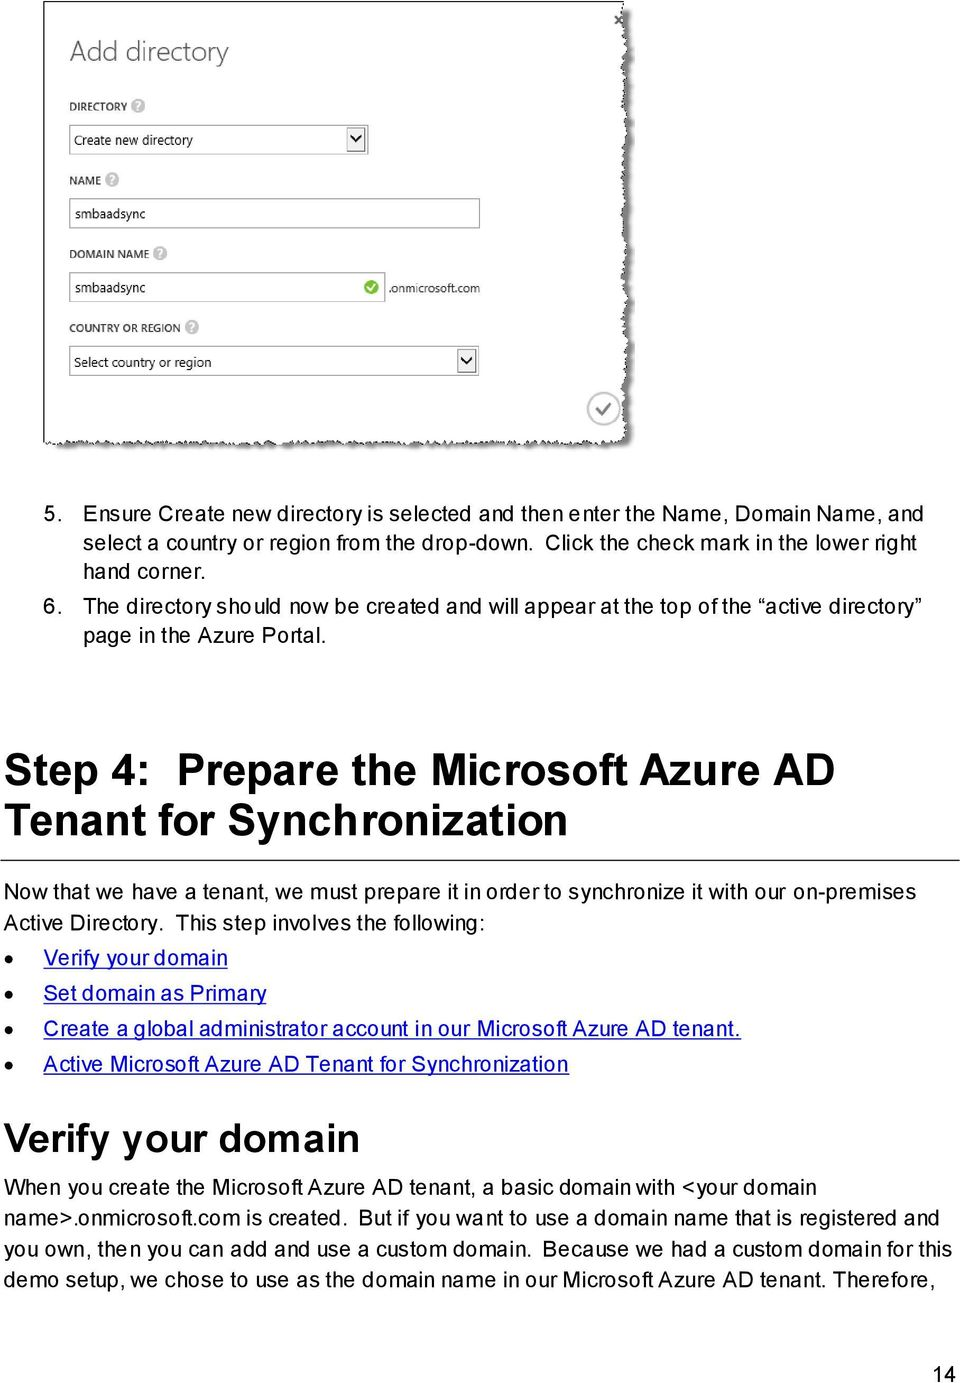 Step 4: Prepare the Microsoft Azure AD Tenant for Synchronization Now that we have a tenant, we must prepare it in order to synchronize it with our on-premises Active Directory.